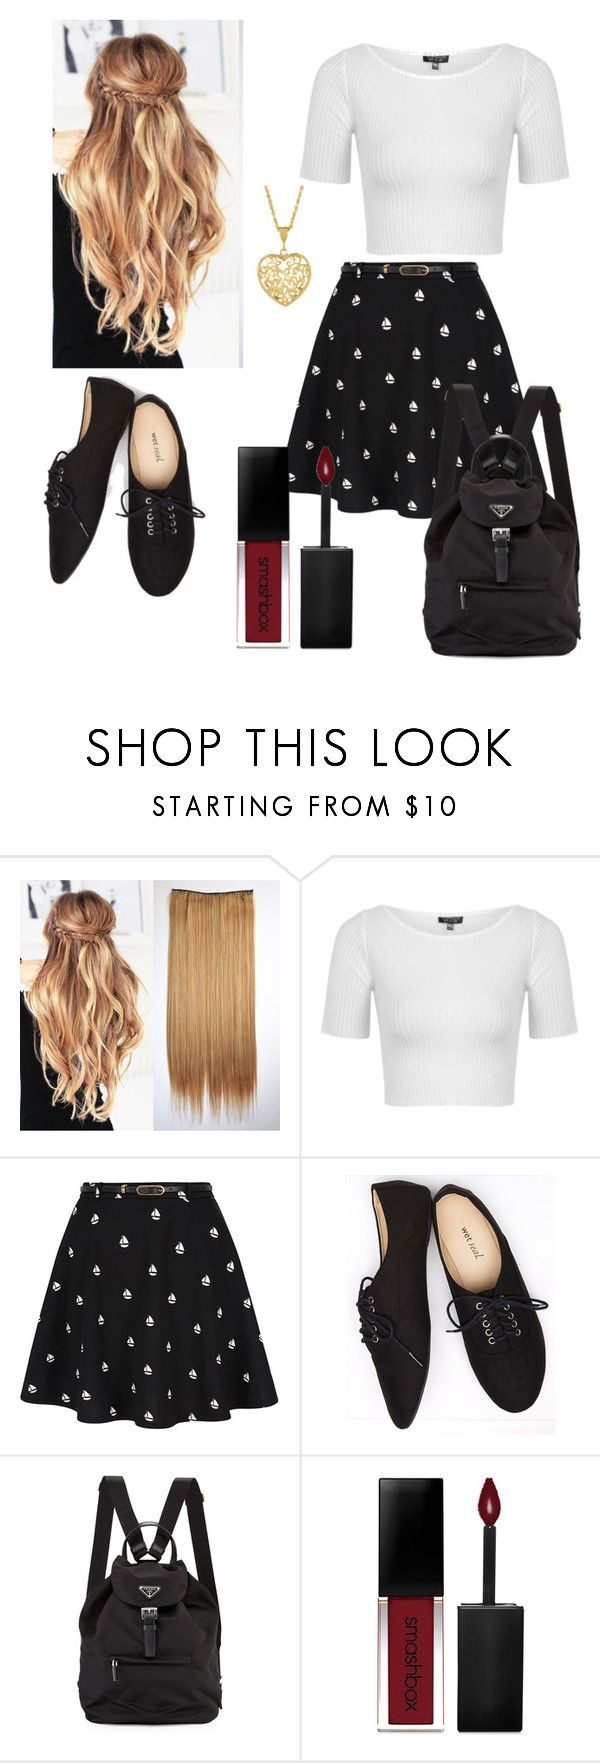 """On the Shore"" by dayna-eichenser on Polyvore featuring Topshop, Yumi, Wet Seal, Prada and Smashbox"